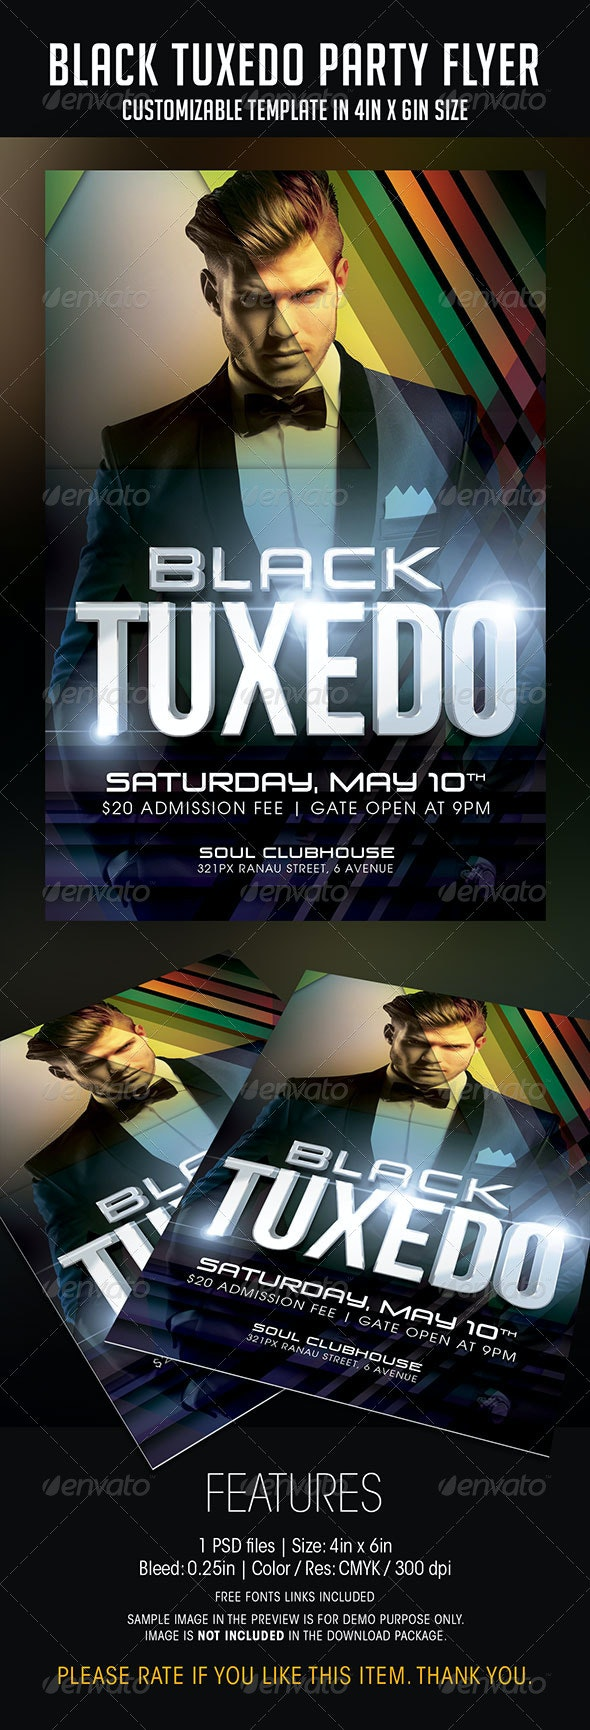 Black Tuxedo Party Flyer - Clubs & Parties Events